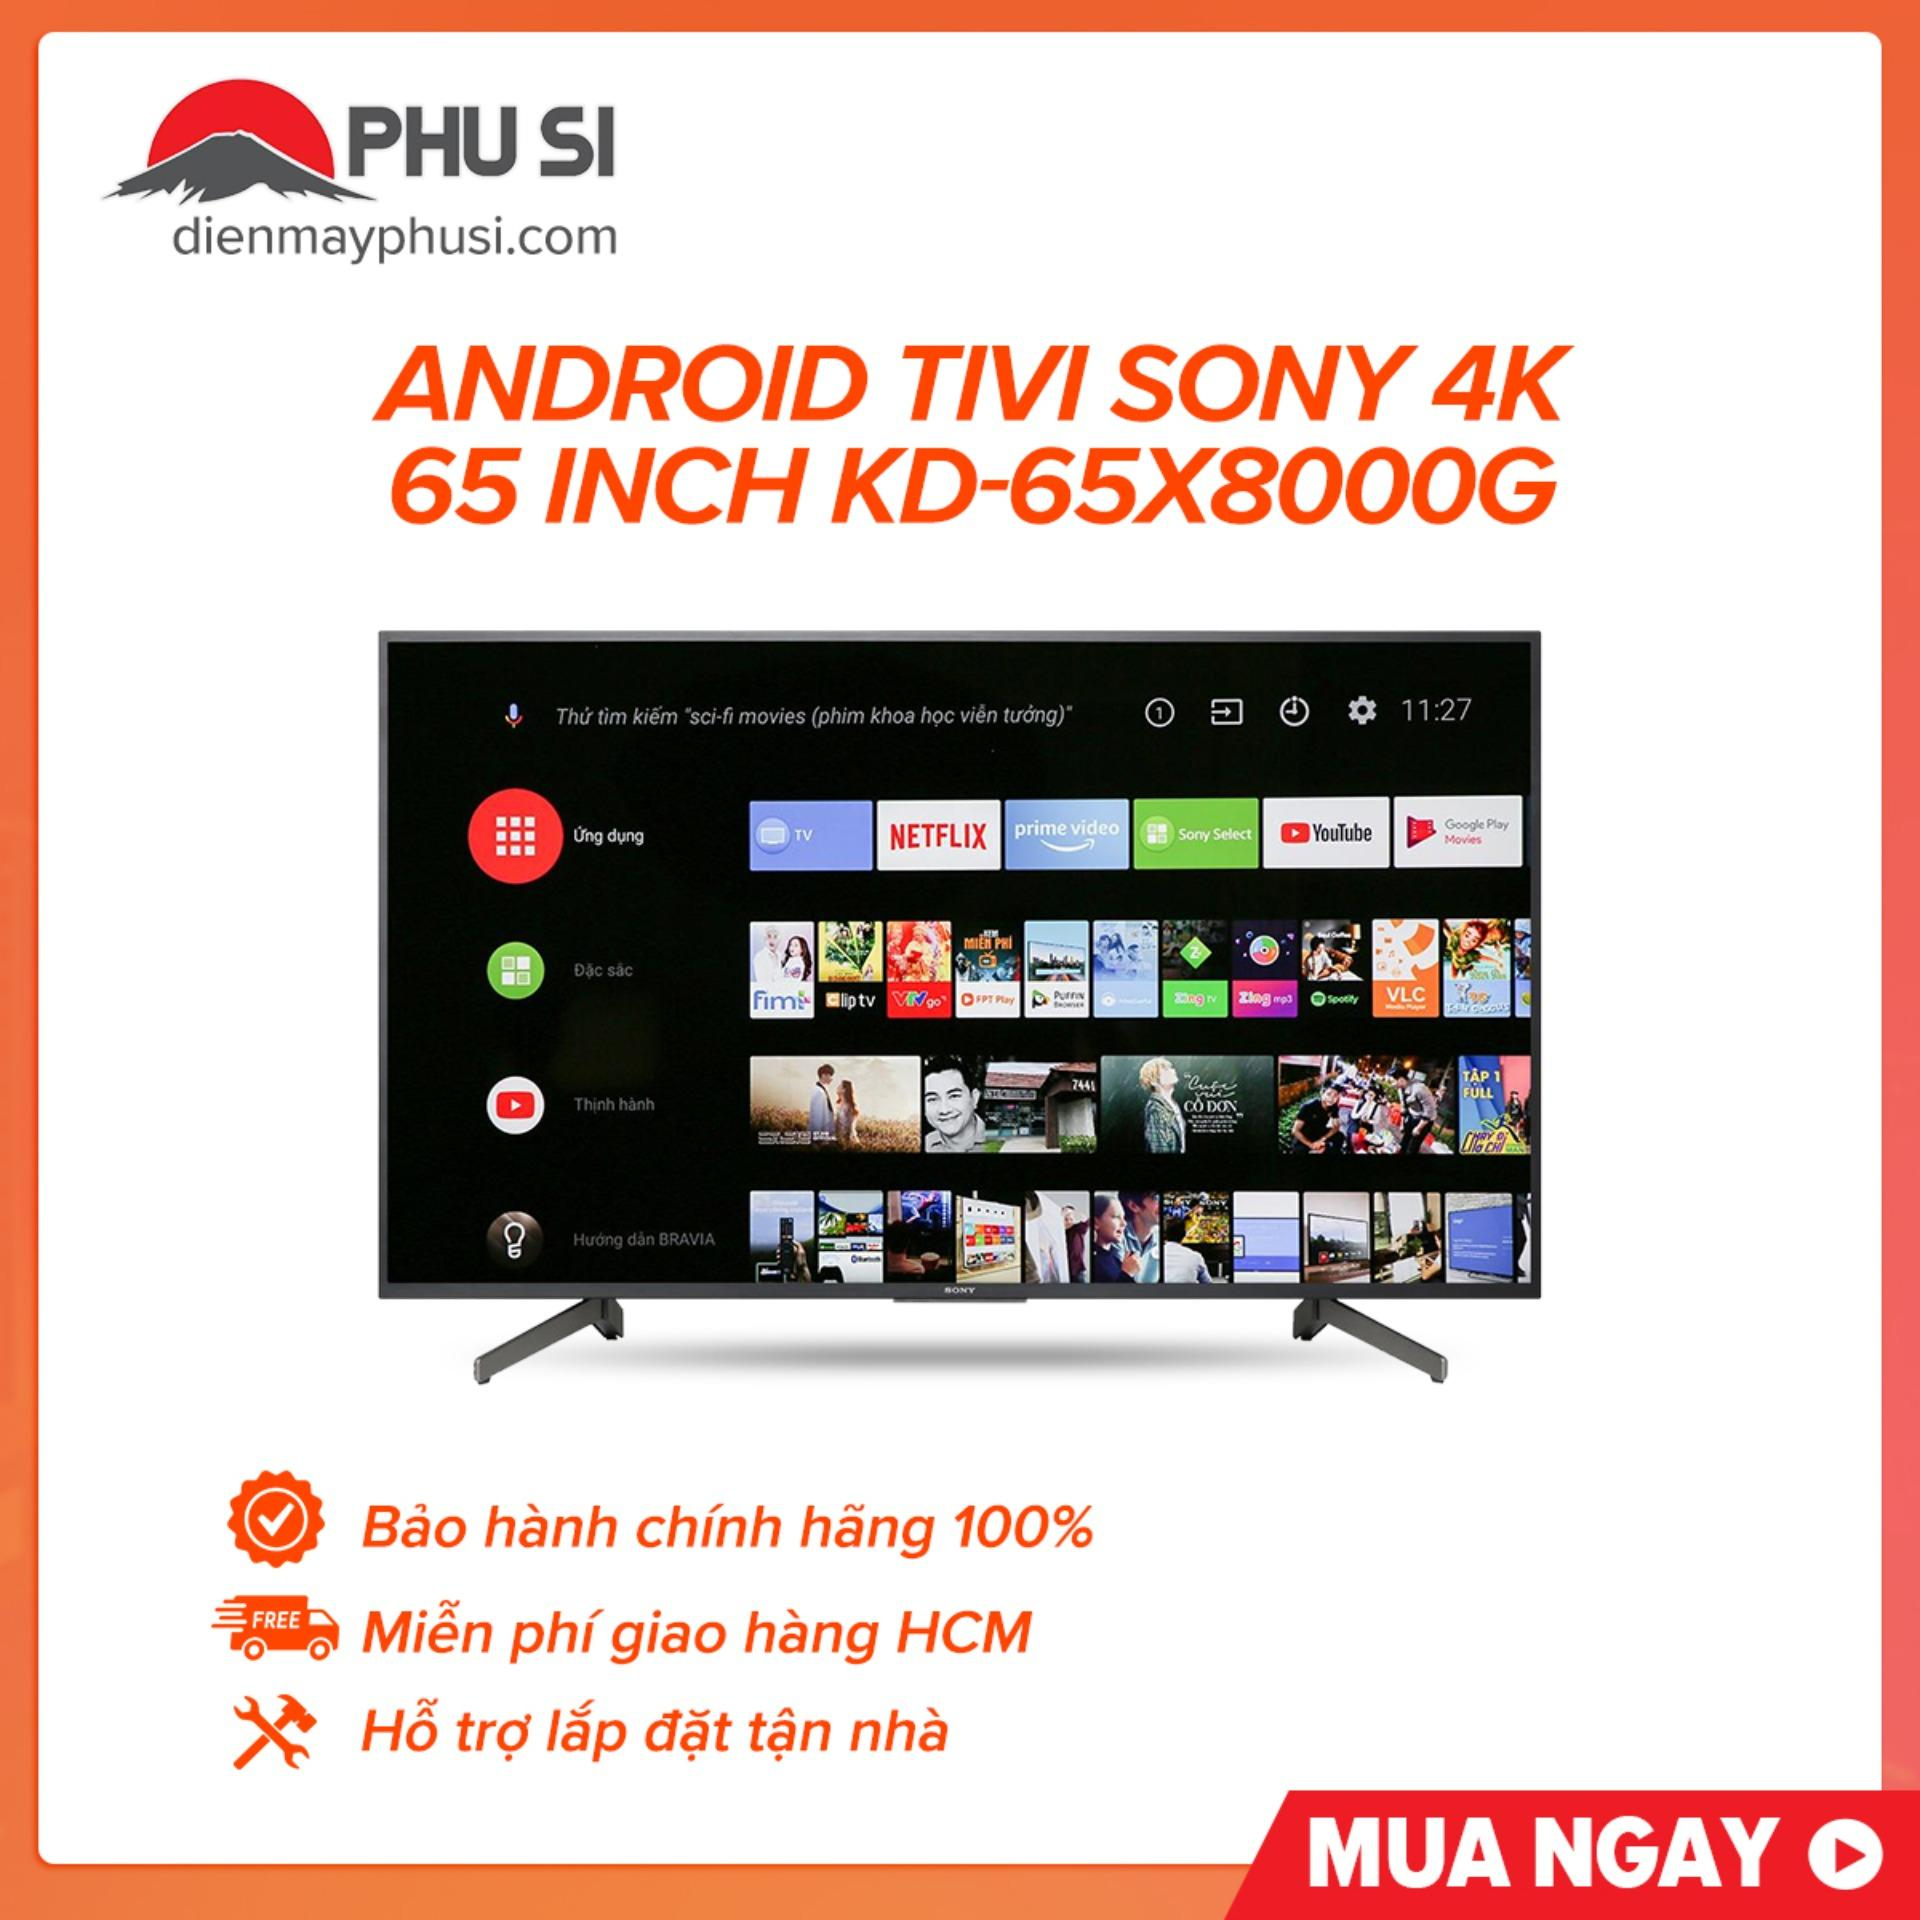 Bảng giá Android Tivi Sony 4K 65 inch KD-65X8000G